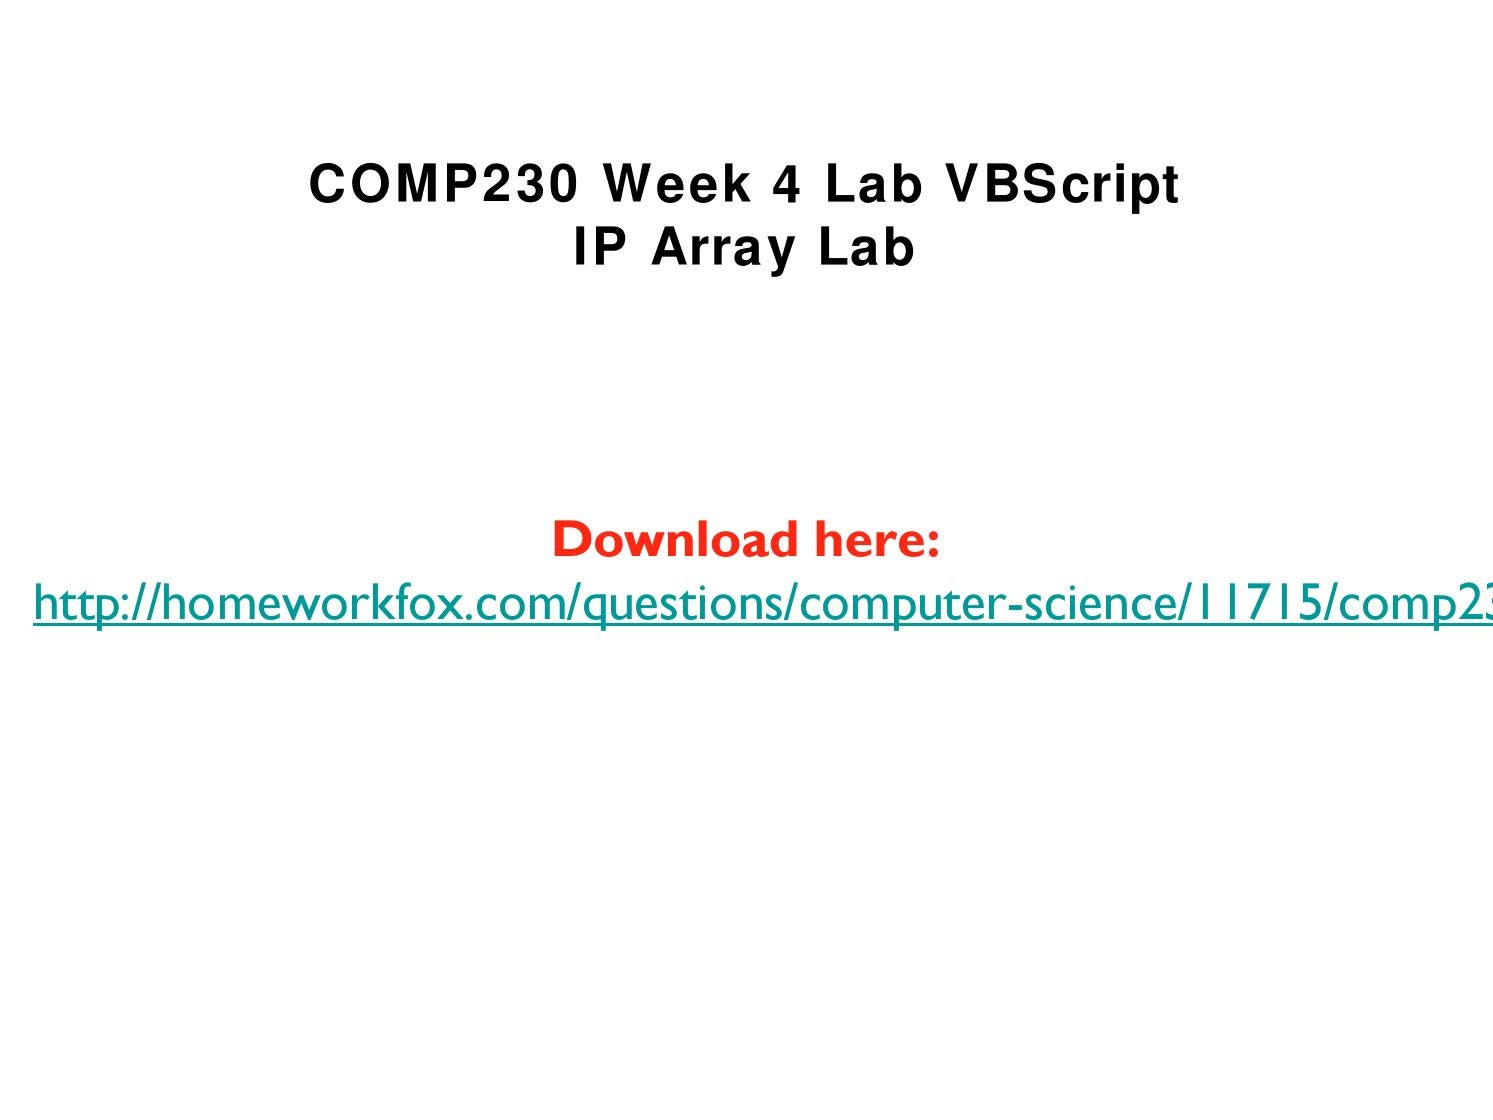 week 4 ip array elab View lab report - week4 ilab from humanities 303 at devry university,   class comp230 date aug 1, 2015 vbscript ip array report in the.